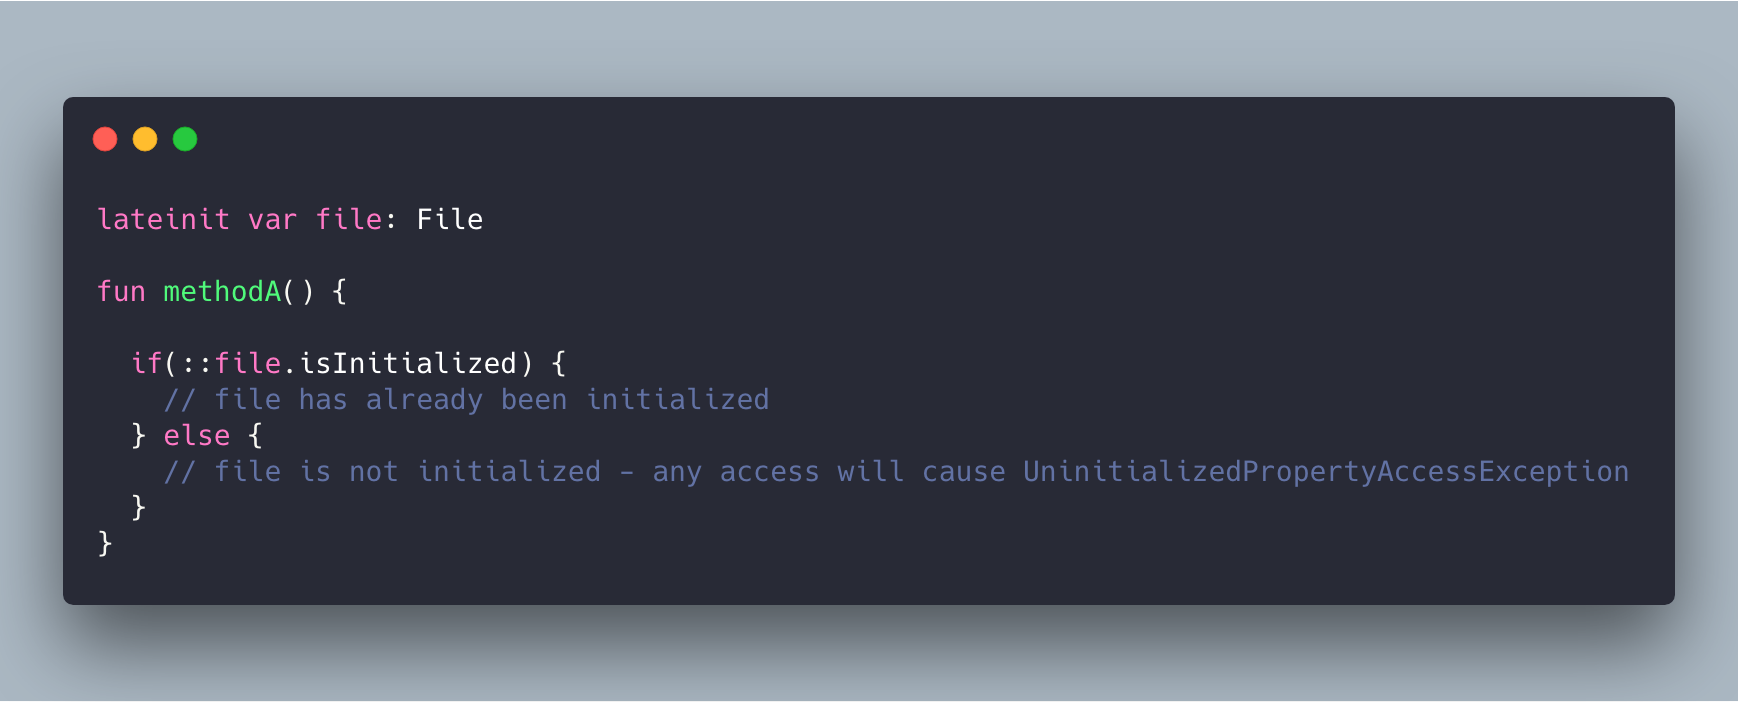 How to check if a property declared as lateinit is already initialized